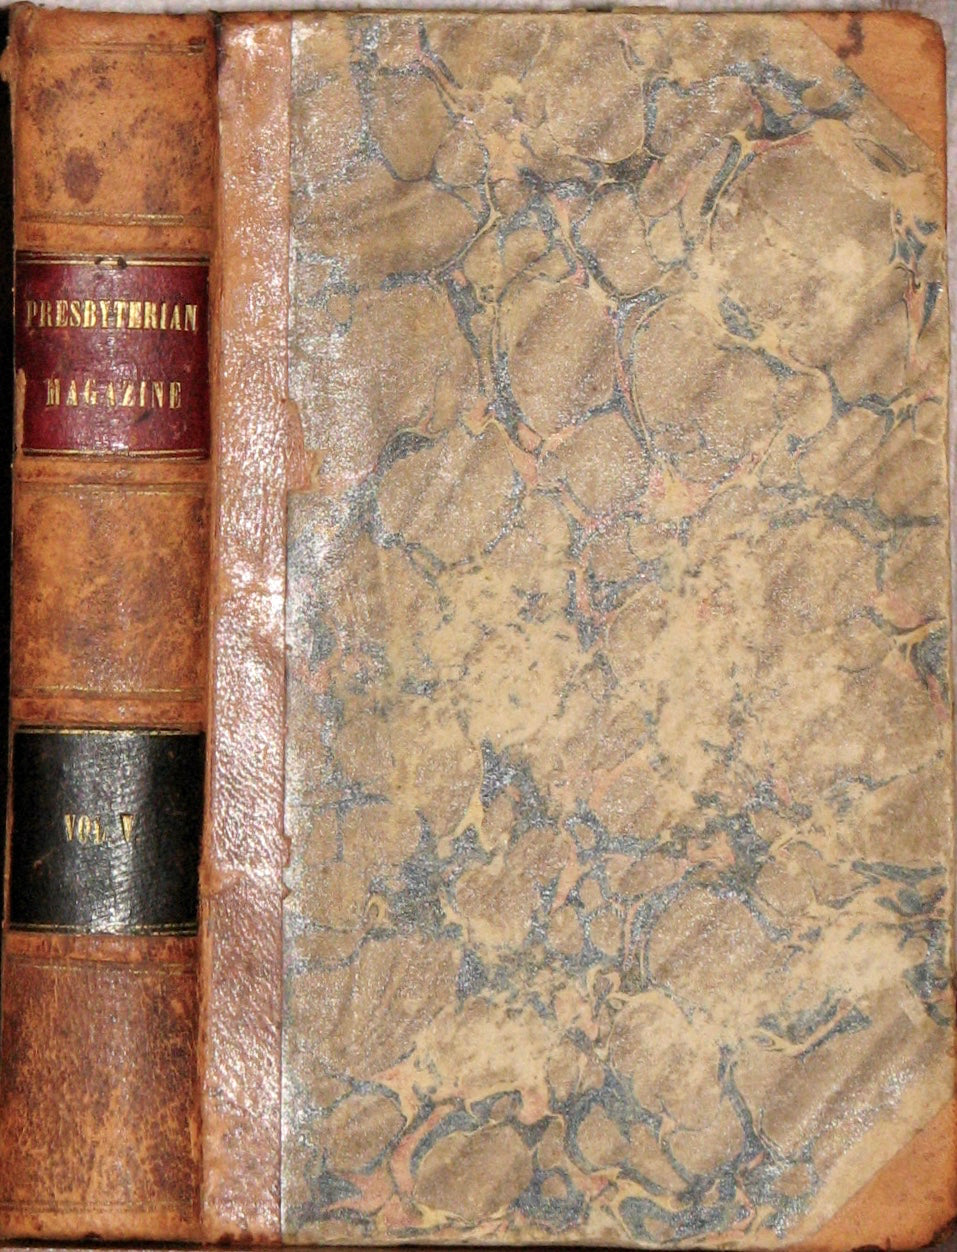 Van Rensselaer, C. [editor]. The Presbyterian Magazine. Vol. V. - 1855.